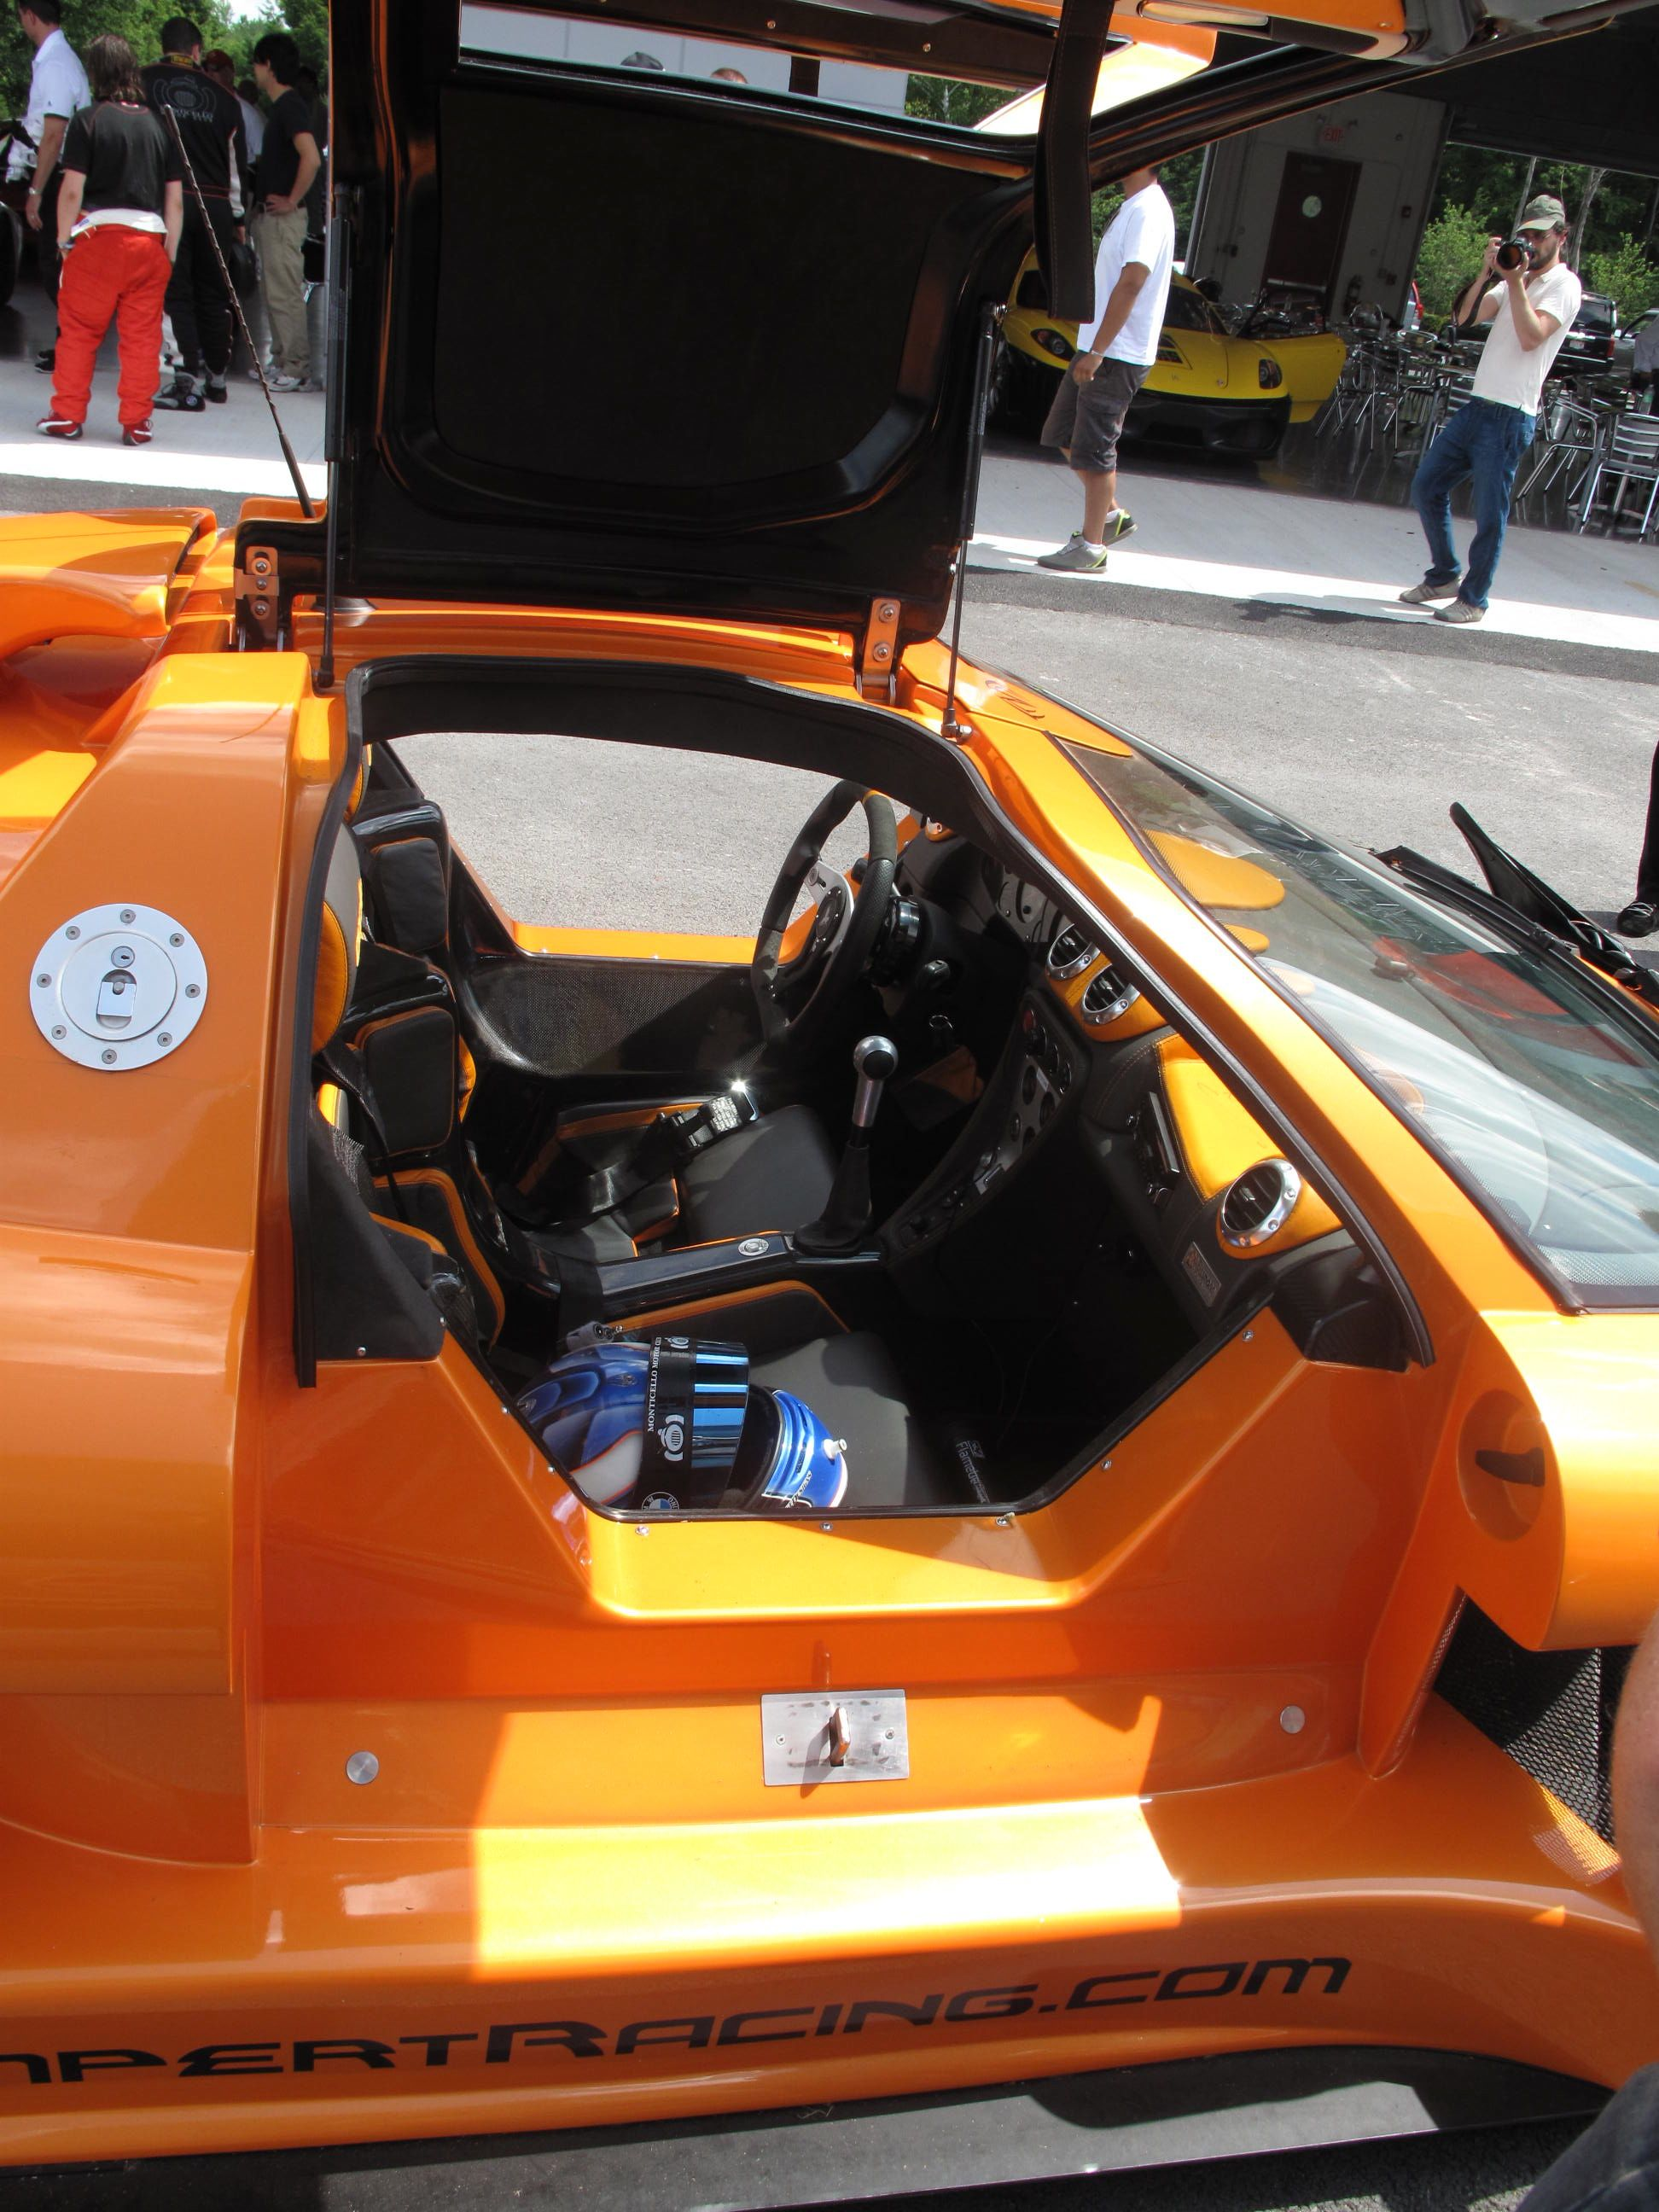 Doors to Gumpert Apollo & Jason H. Harper writer u2014 travel cars lifestyle » Doors to Gumpert ...